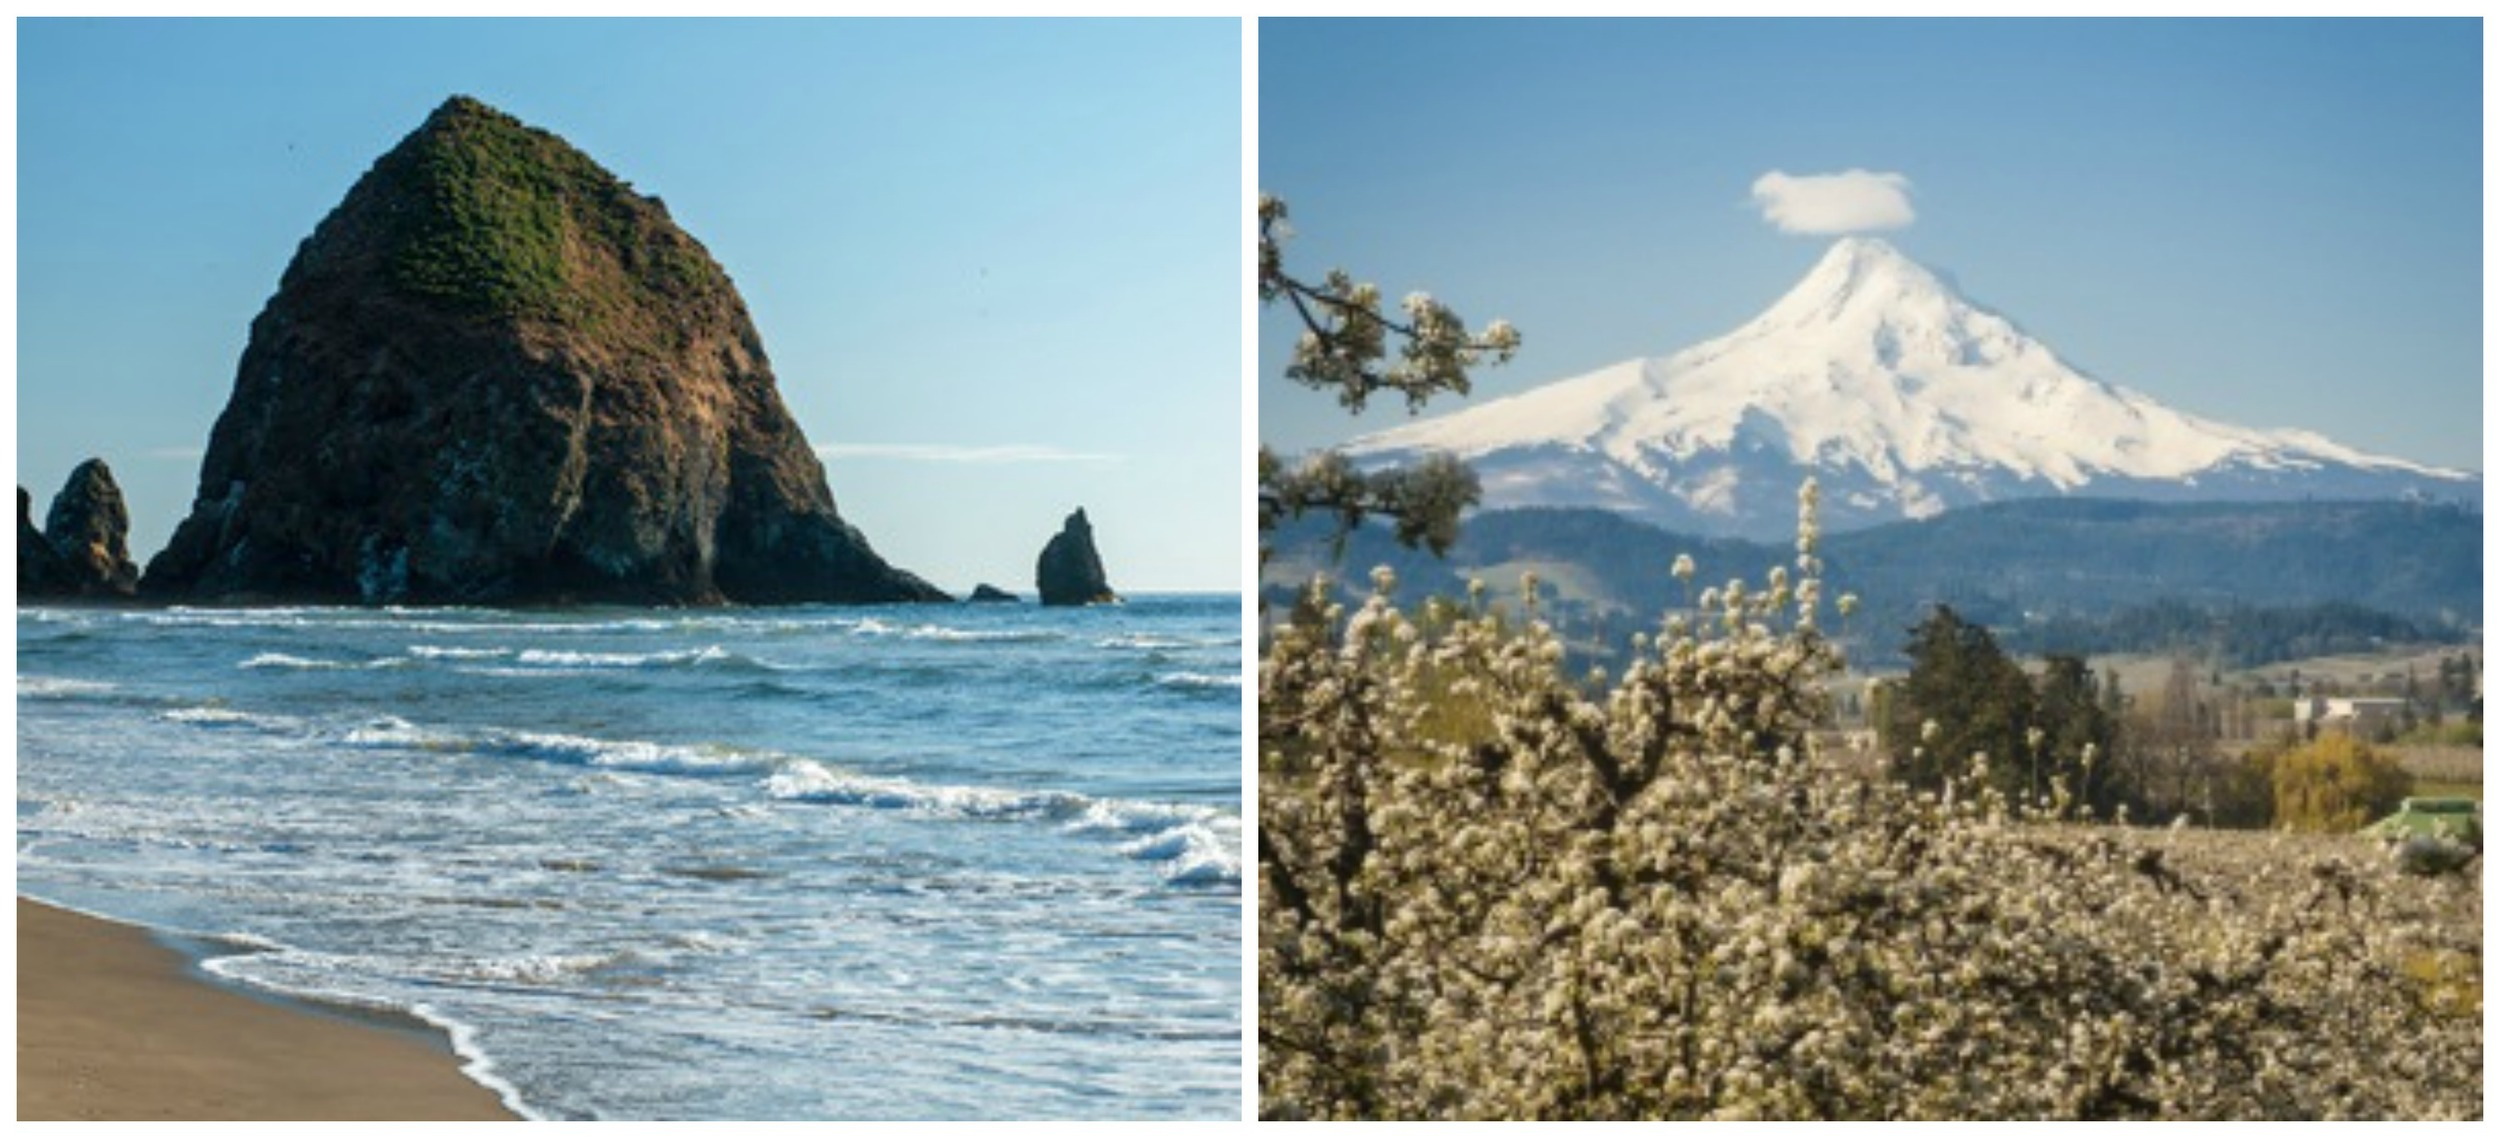 Oregon has spectacular mountains and a beautiful coastline, but a new study says it also has a high cost-of-living, high taxes and a lot of rain that may deter retirees from settling here.